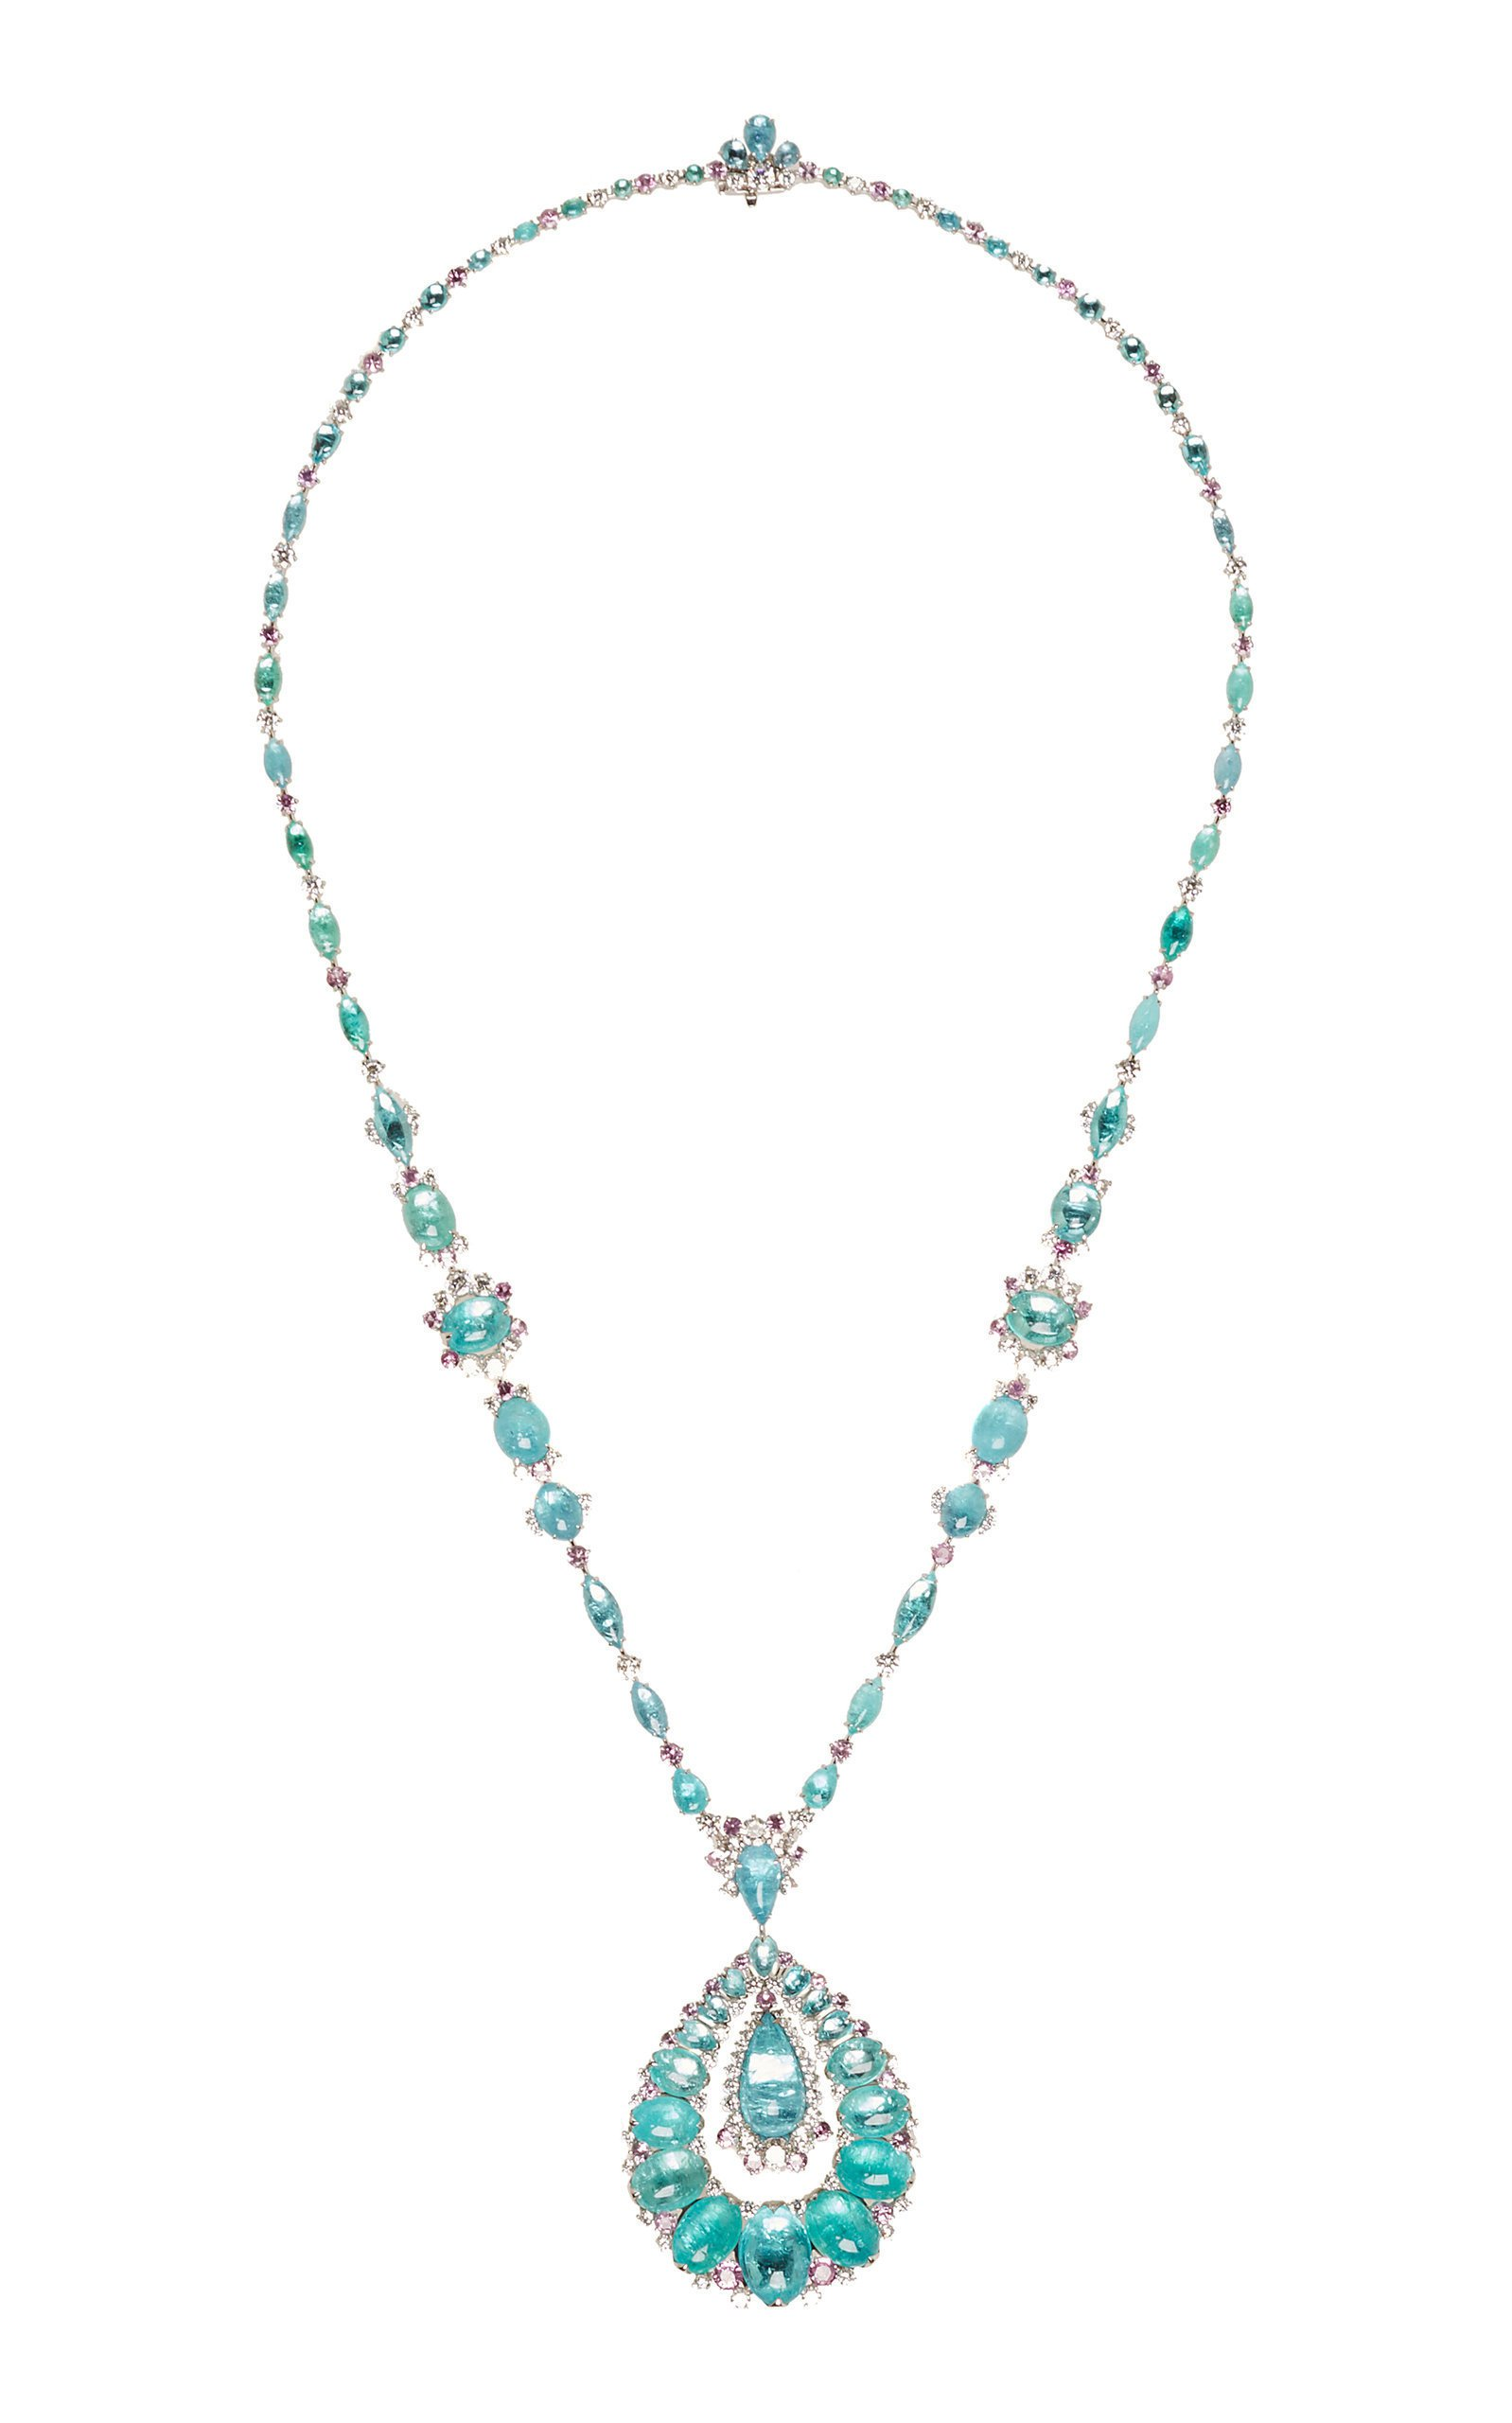 David Morris One Of A Kind Paraiba Tourmaline Neckalce